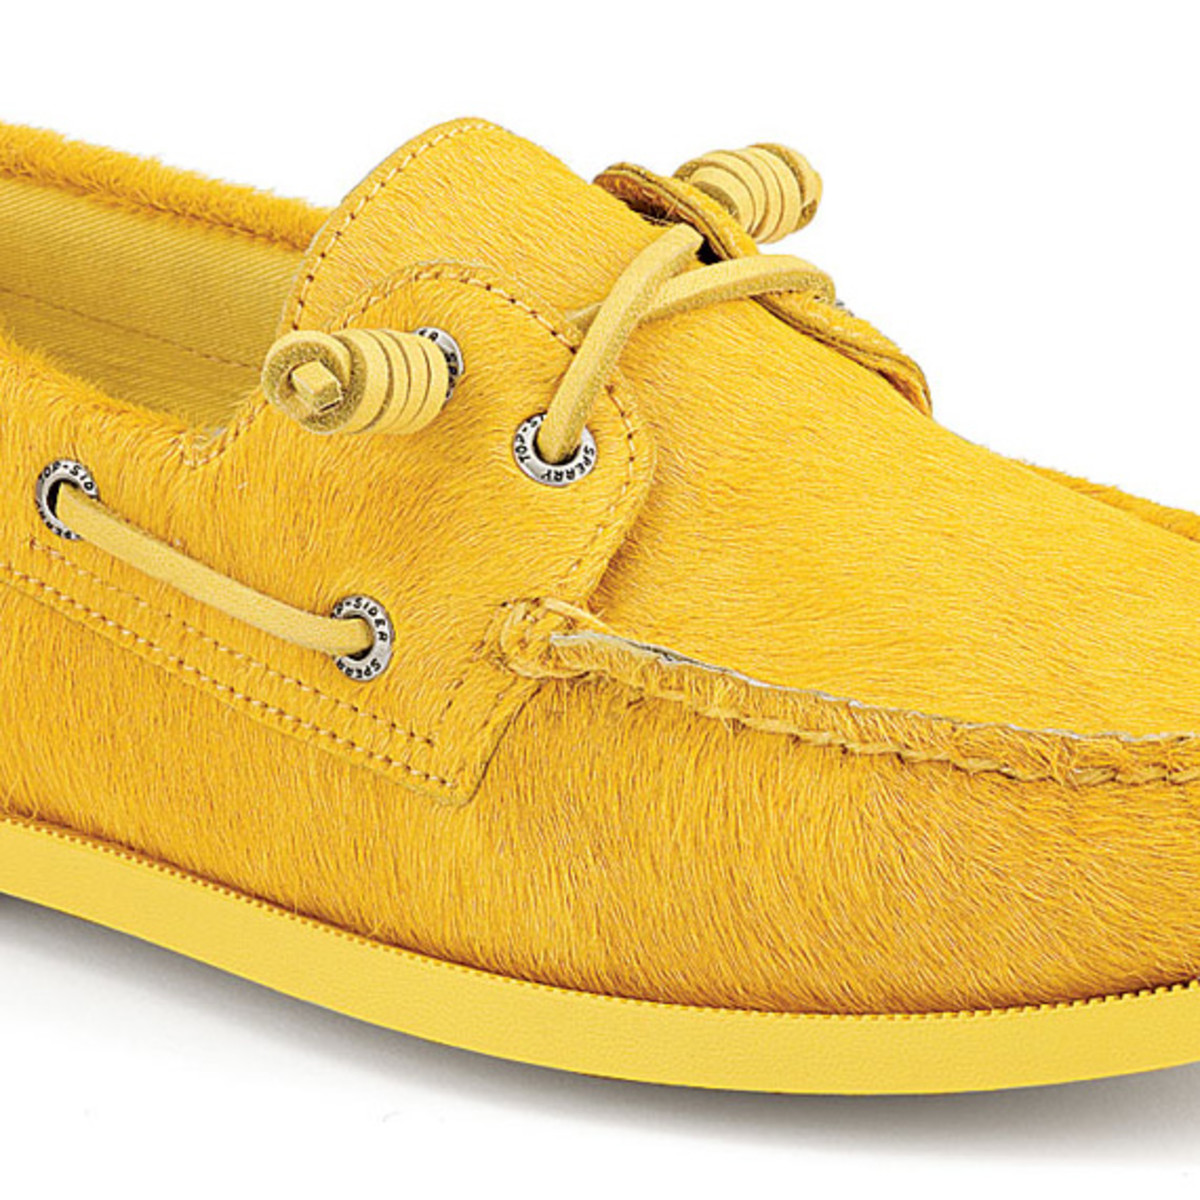 jeffrey-x-sperry-top-sider-authentic-original-barrel-lace-boat-shoes-06